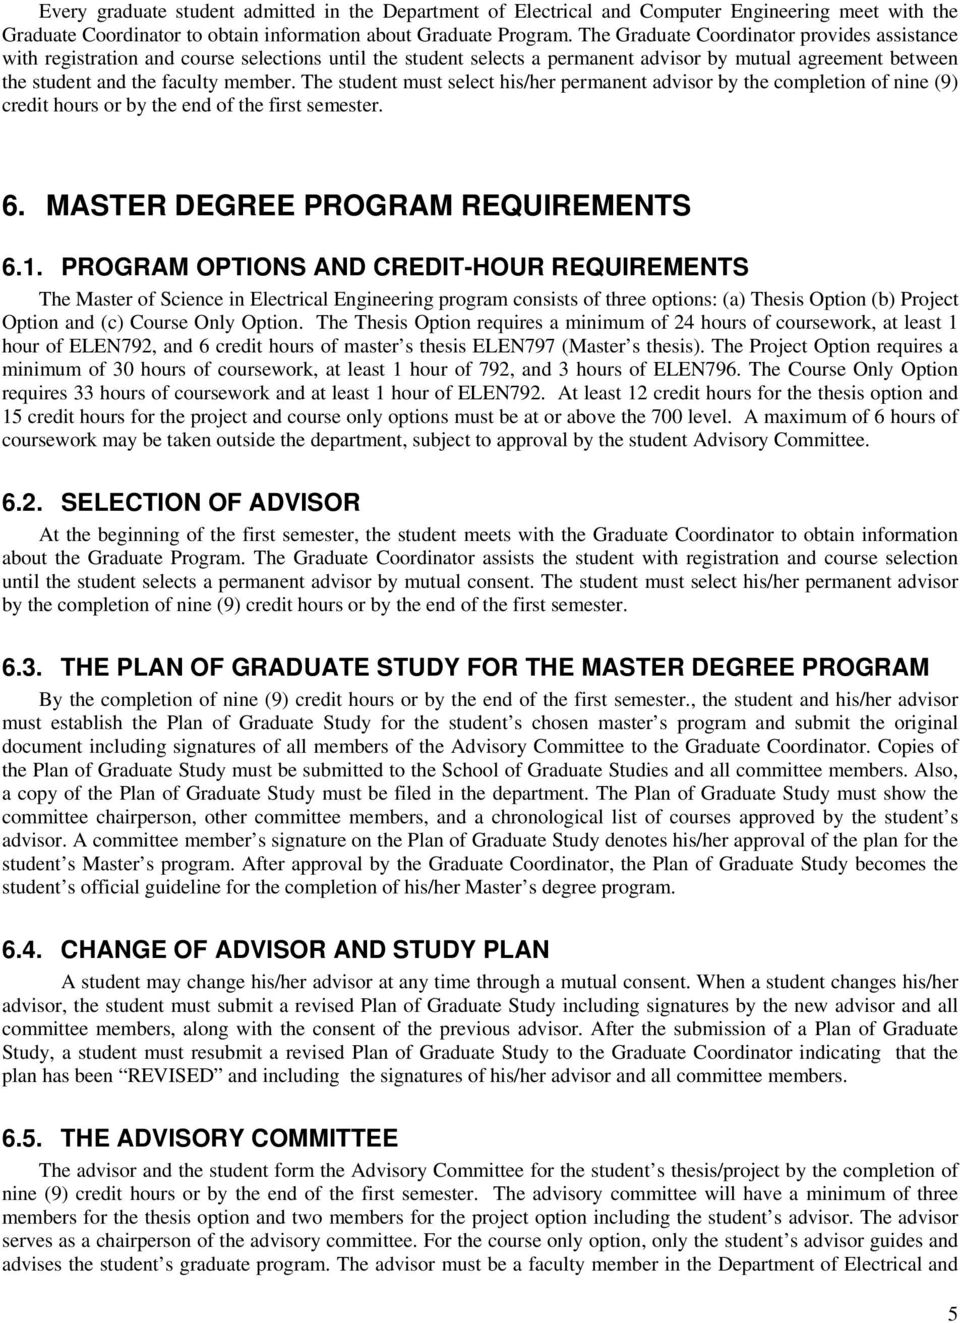 The student must select his/her permanent advisor by the completion of nine (9) credit hours or by the end of the first semester. 6. MASTER DEGREE PROGRAM REQUIREMENTS 6.1.